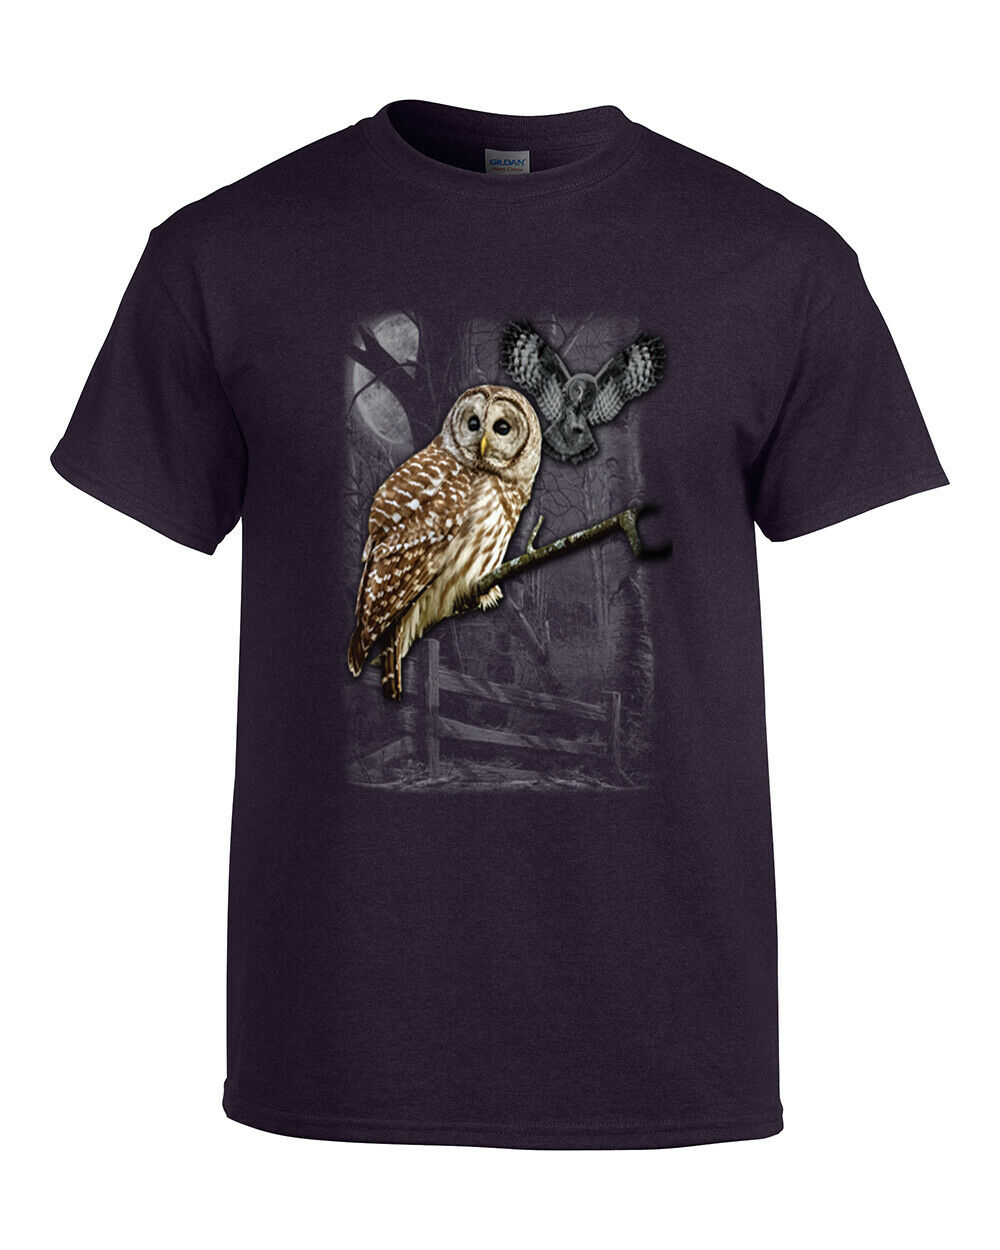 Owl <font><b>Wilderness</b></font> Adult <font><b>T</b></font> <font><b>Shirt</b></font> image